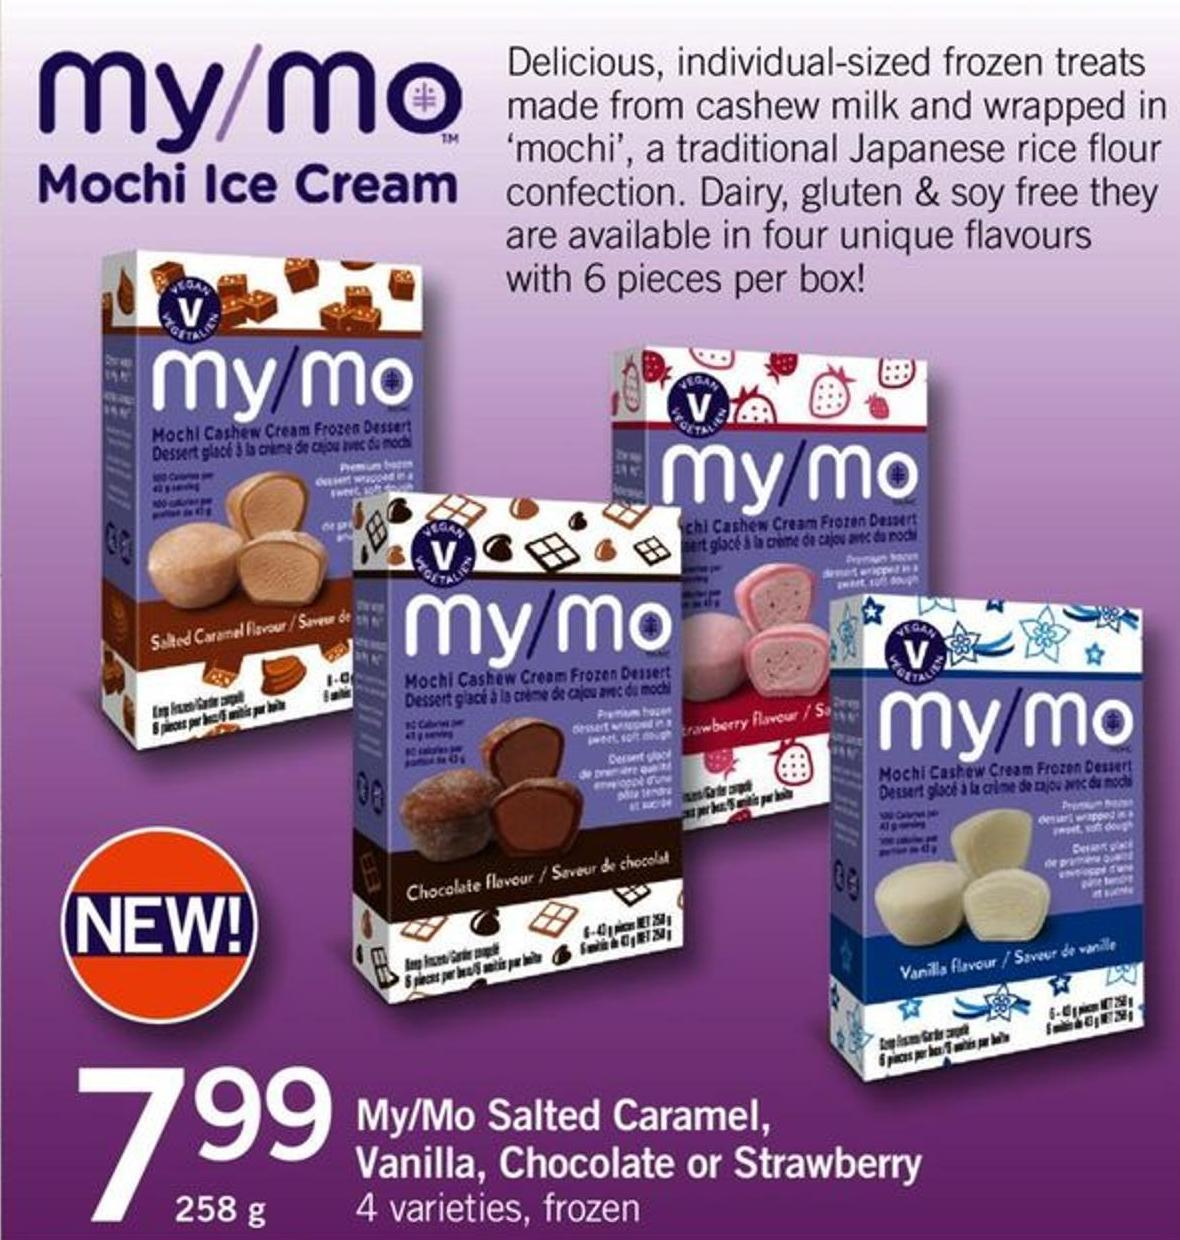 My/mo Salted Caramel - Vanilla - Chocolate Or Strawberry - 258 G